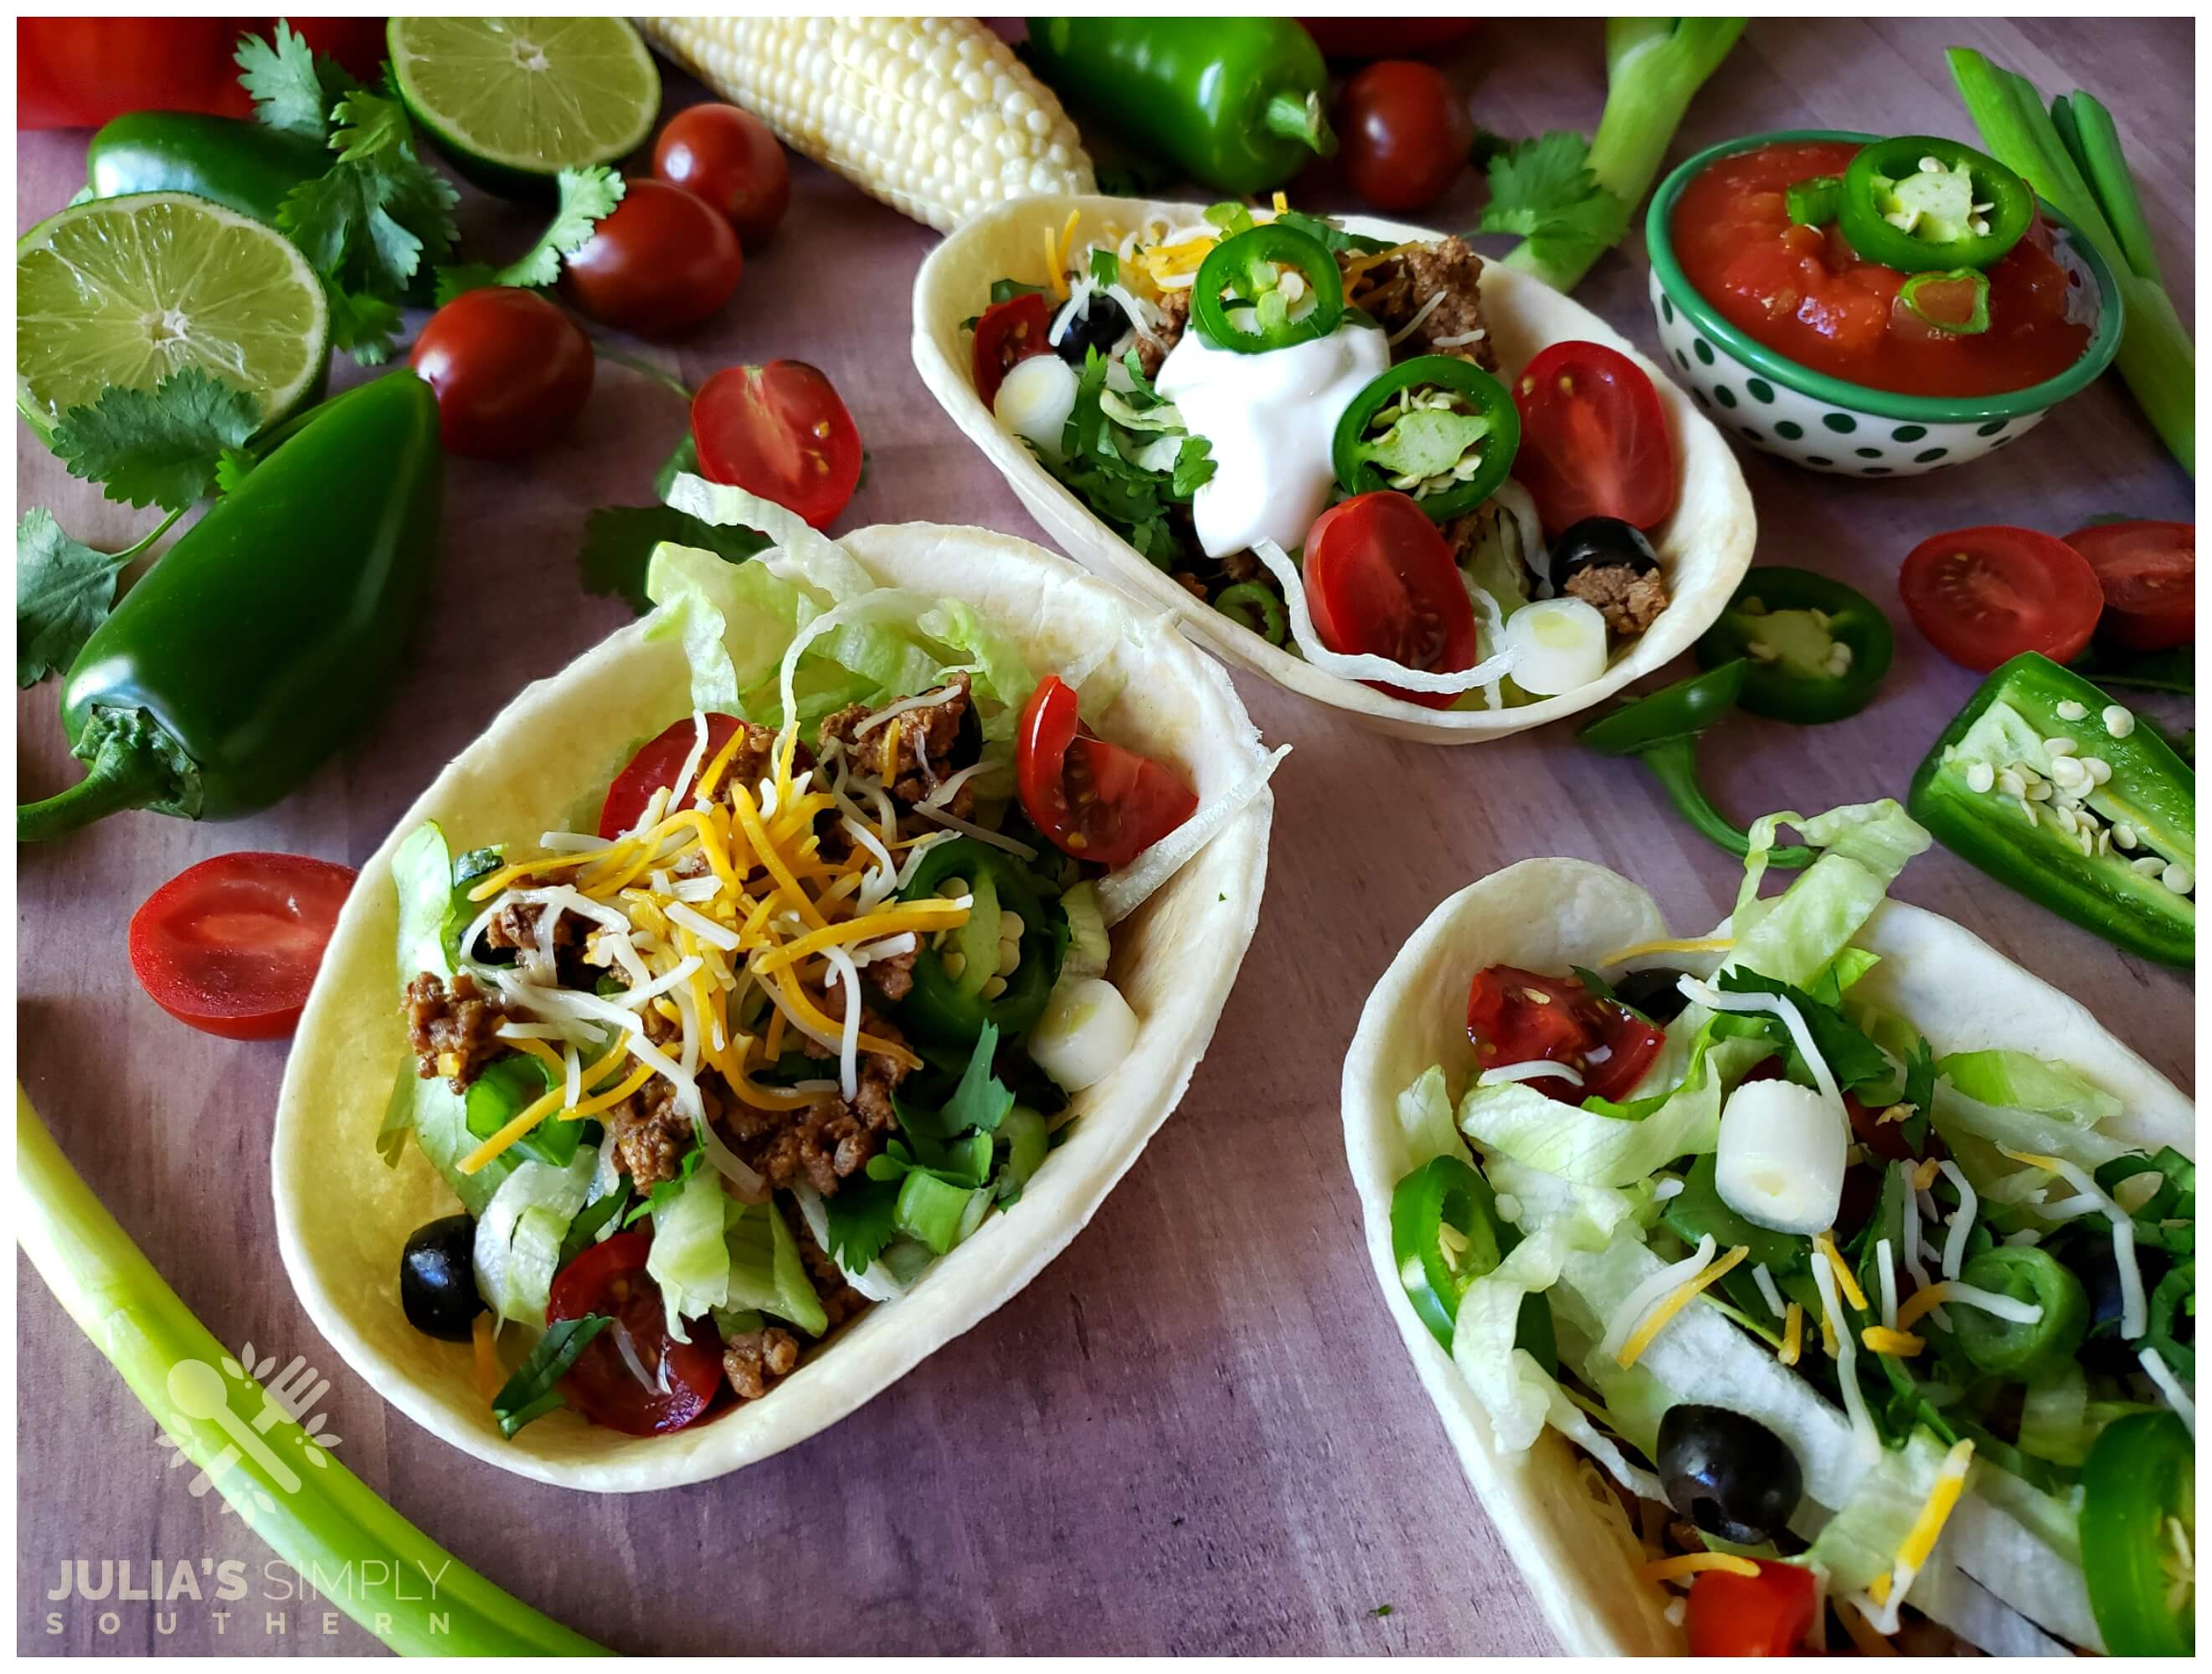 Best beef tacos recipe - Taco boats in flour tortilla bowls